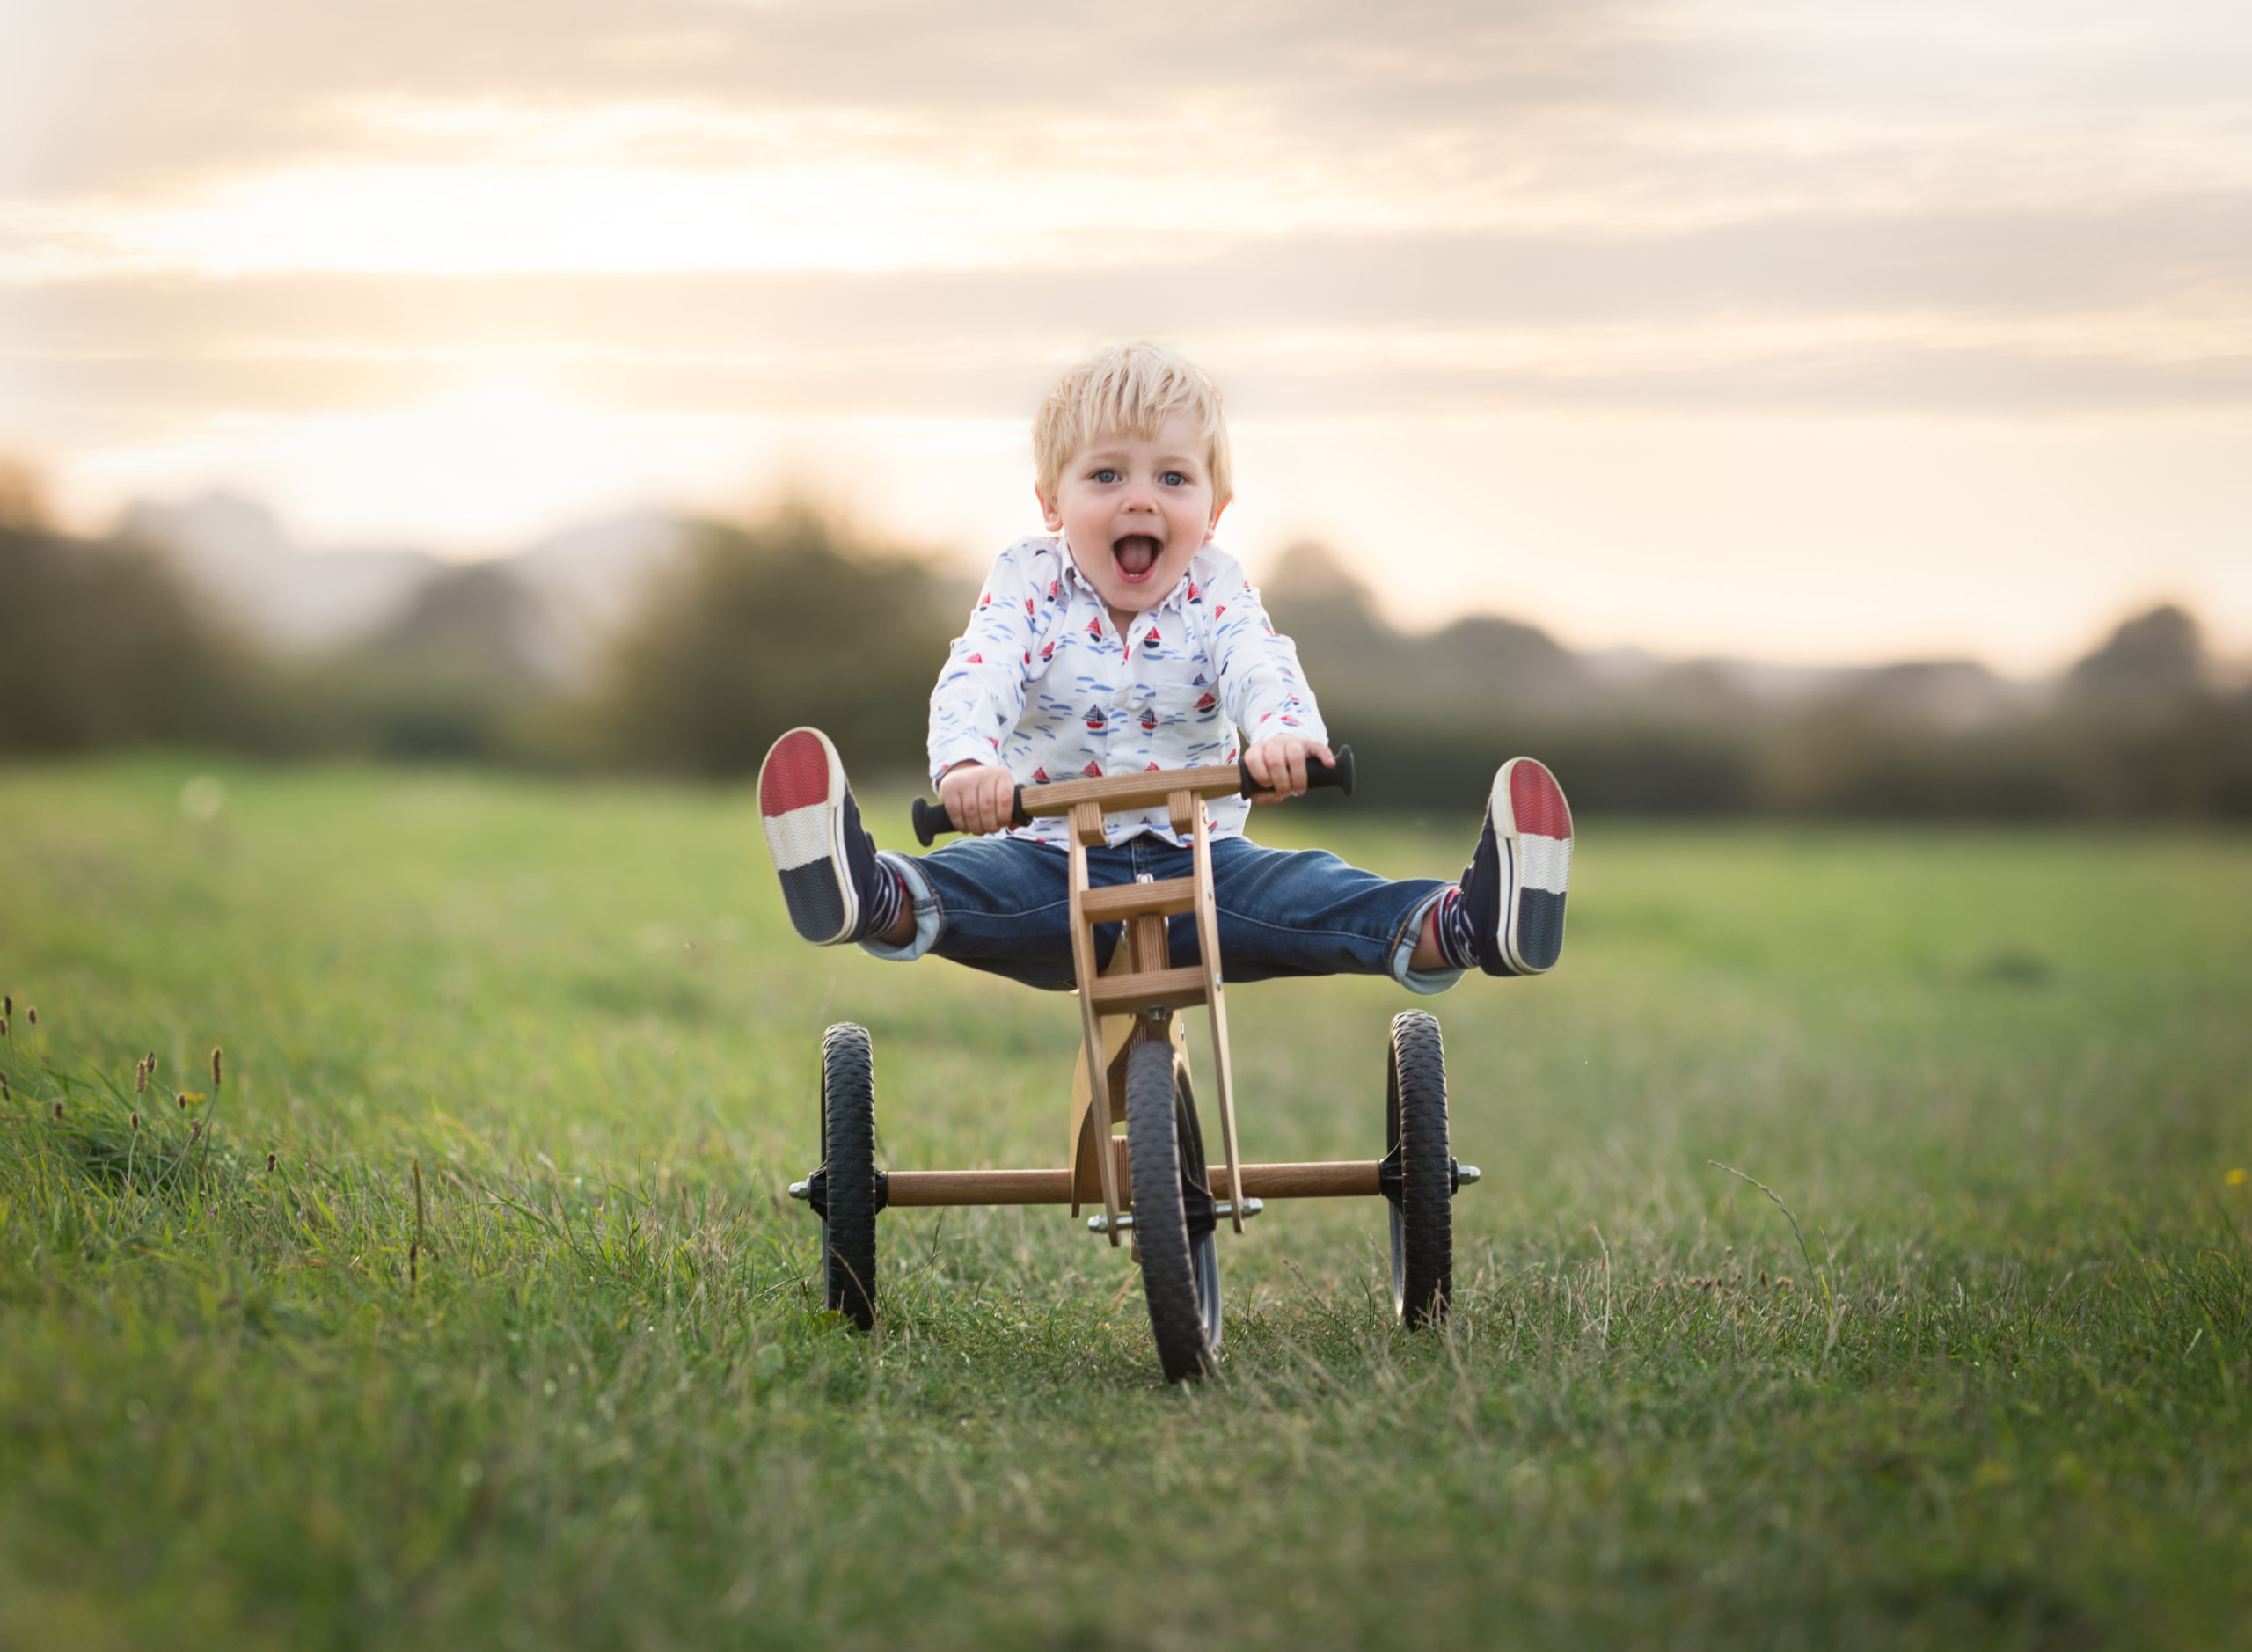 Toddler on bike with legs up on photoshoot in Oxford